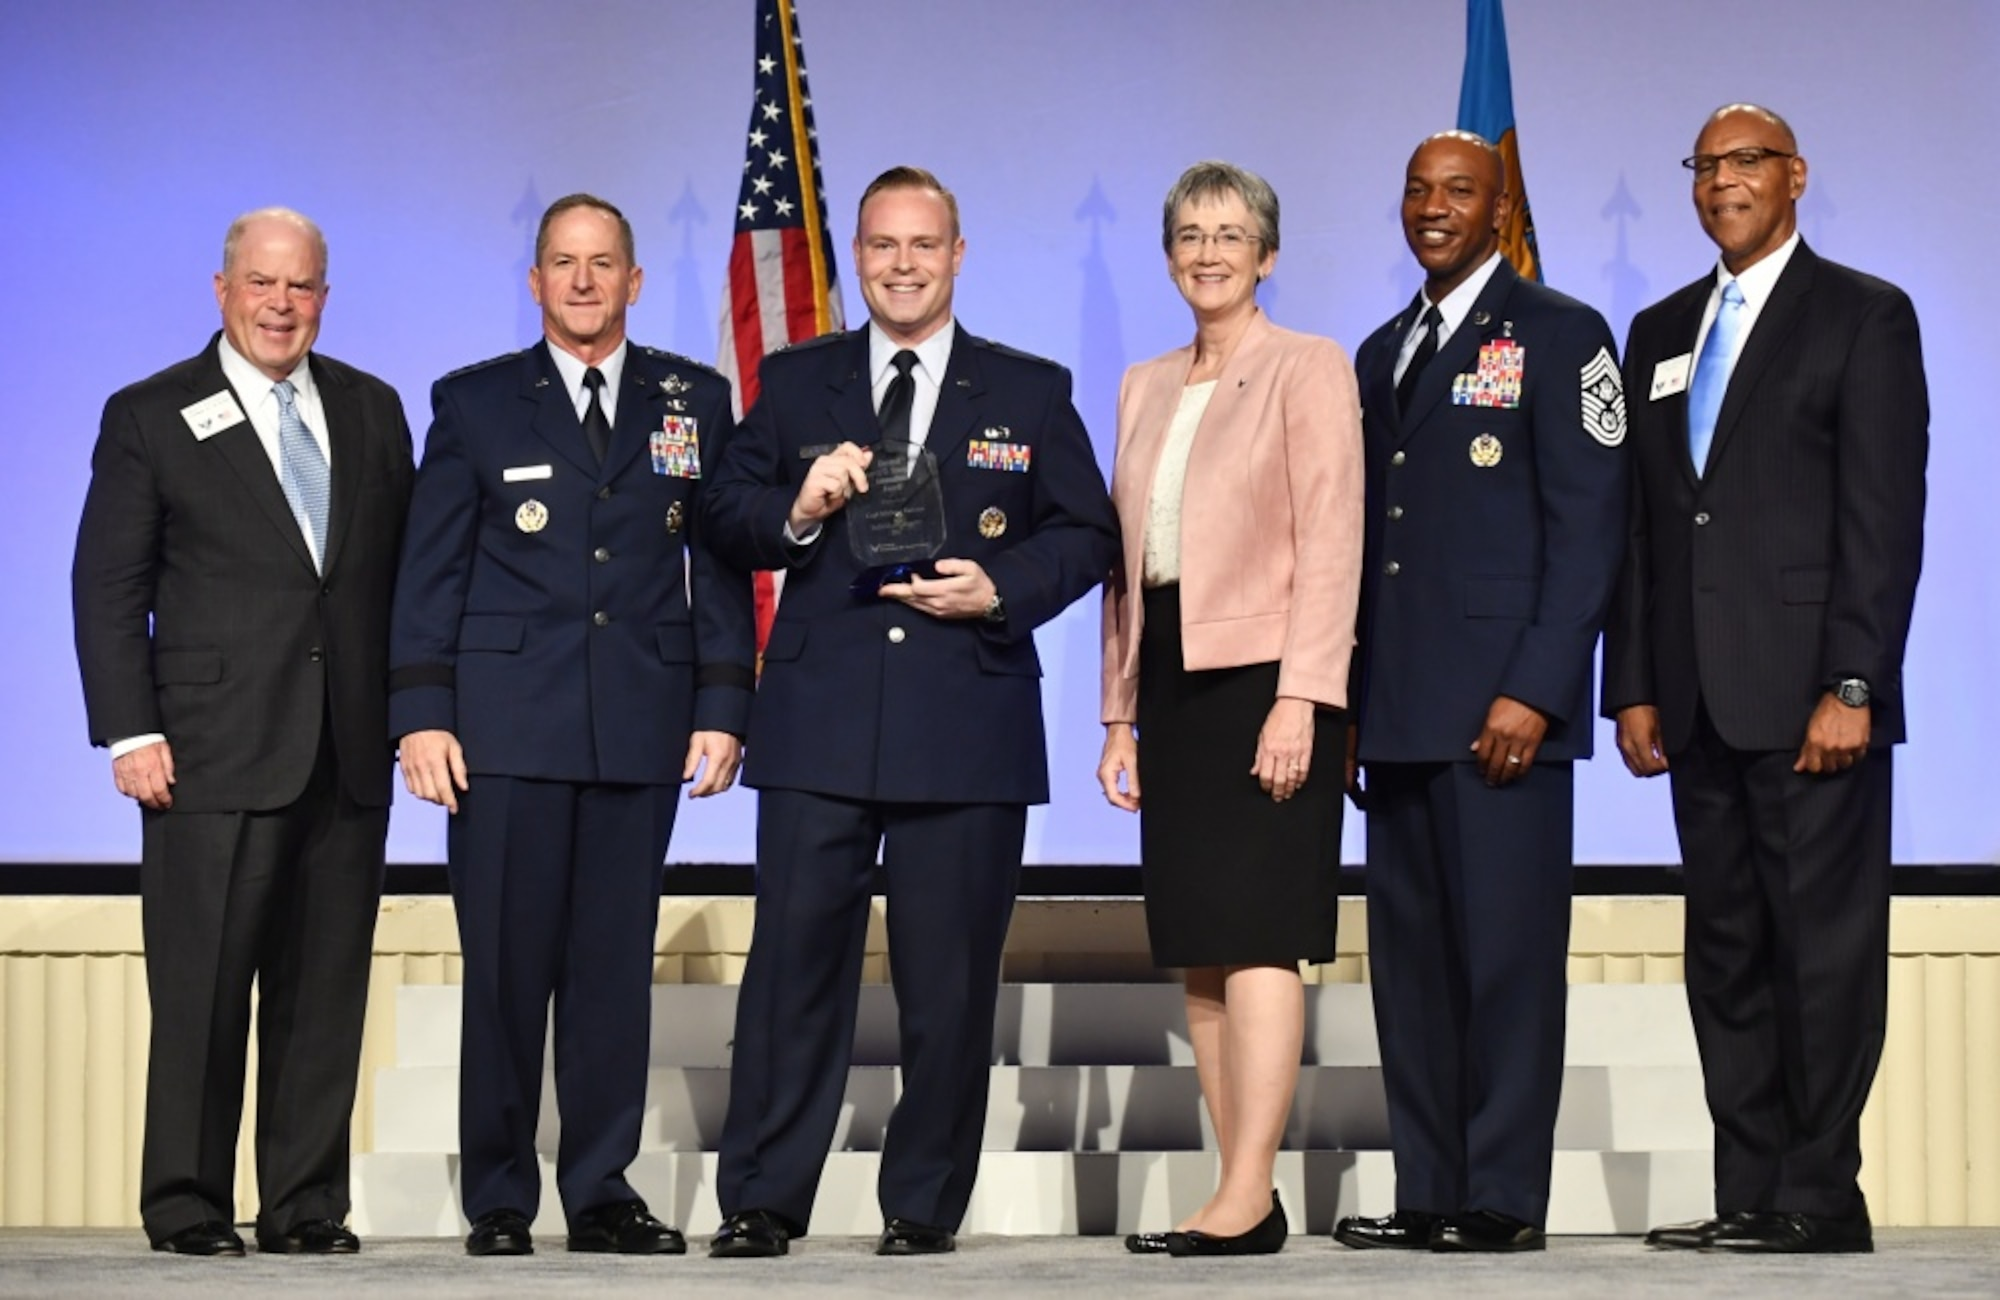 Capt. Michael Kanaan, intelligence, surveillance and reconnaissance enterprise lead receives the Gen. Spencer Innovation Award - Individual from Chief of Staff of the Air Force Gen. David L. Goldfein, second from left, Secretary of the Air Force Heather Wilson, third from right, Chief Master Sgt. of the Air Force Kaleth Wright, second from right, Gen. (ret.) Larry Spencer, far right, and Whit Peters, Chairman of the Air Force Association Board, far left, during the AFA Air, Space and Cyber Conference in National Harbor, Md., Sept. 17, 2018. The award recognizes Kanaan in government, industry and academia as a thought leader in the digital field across all Air Force functions who demonstrably shapes the highest levels of operations, messaging and funding. (U.S. Air Force photo by Staff Sgt. Rusty Frank)